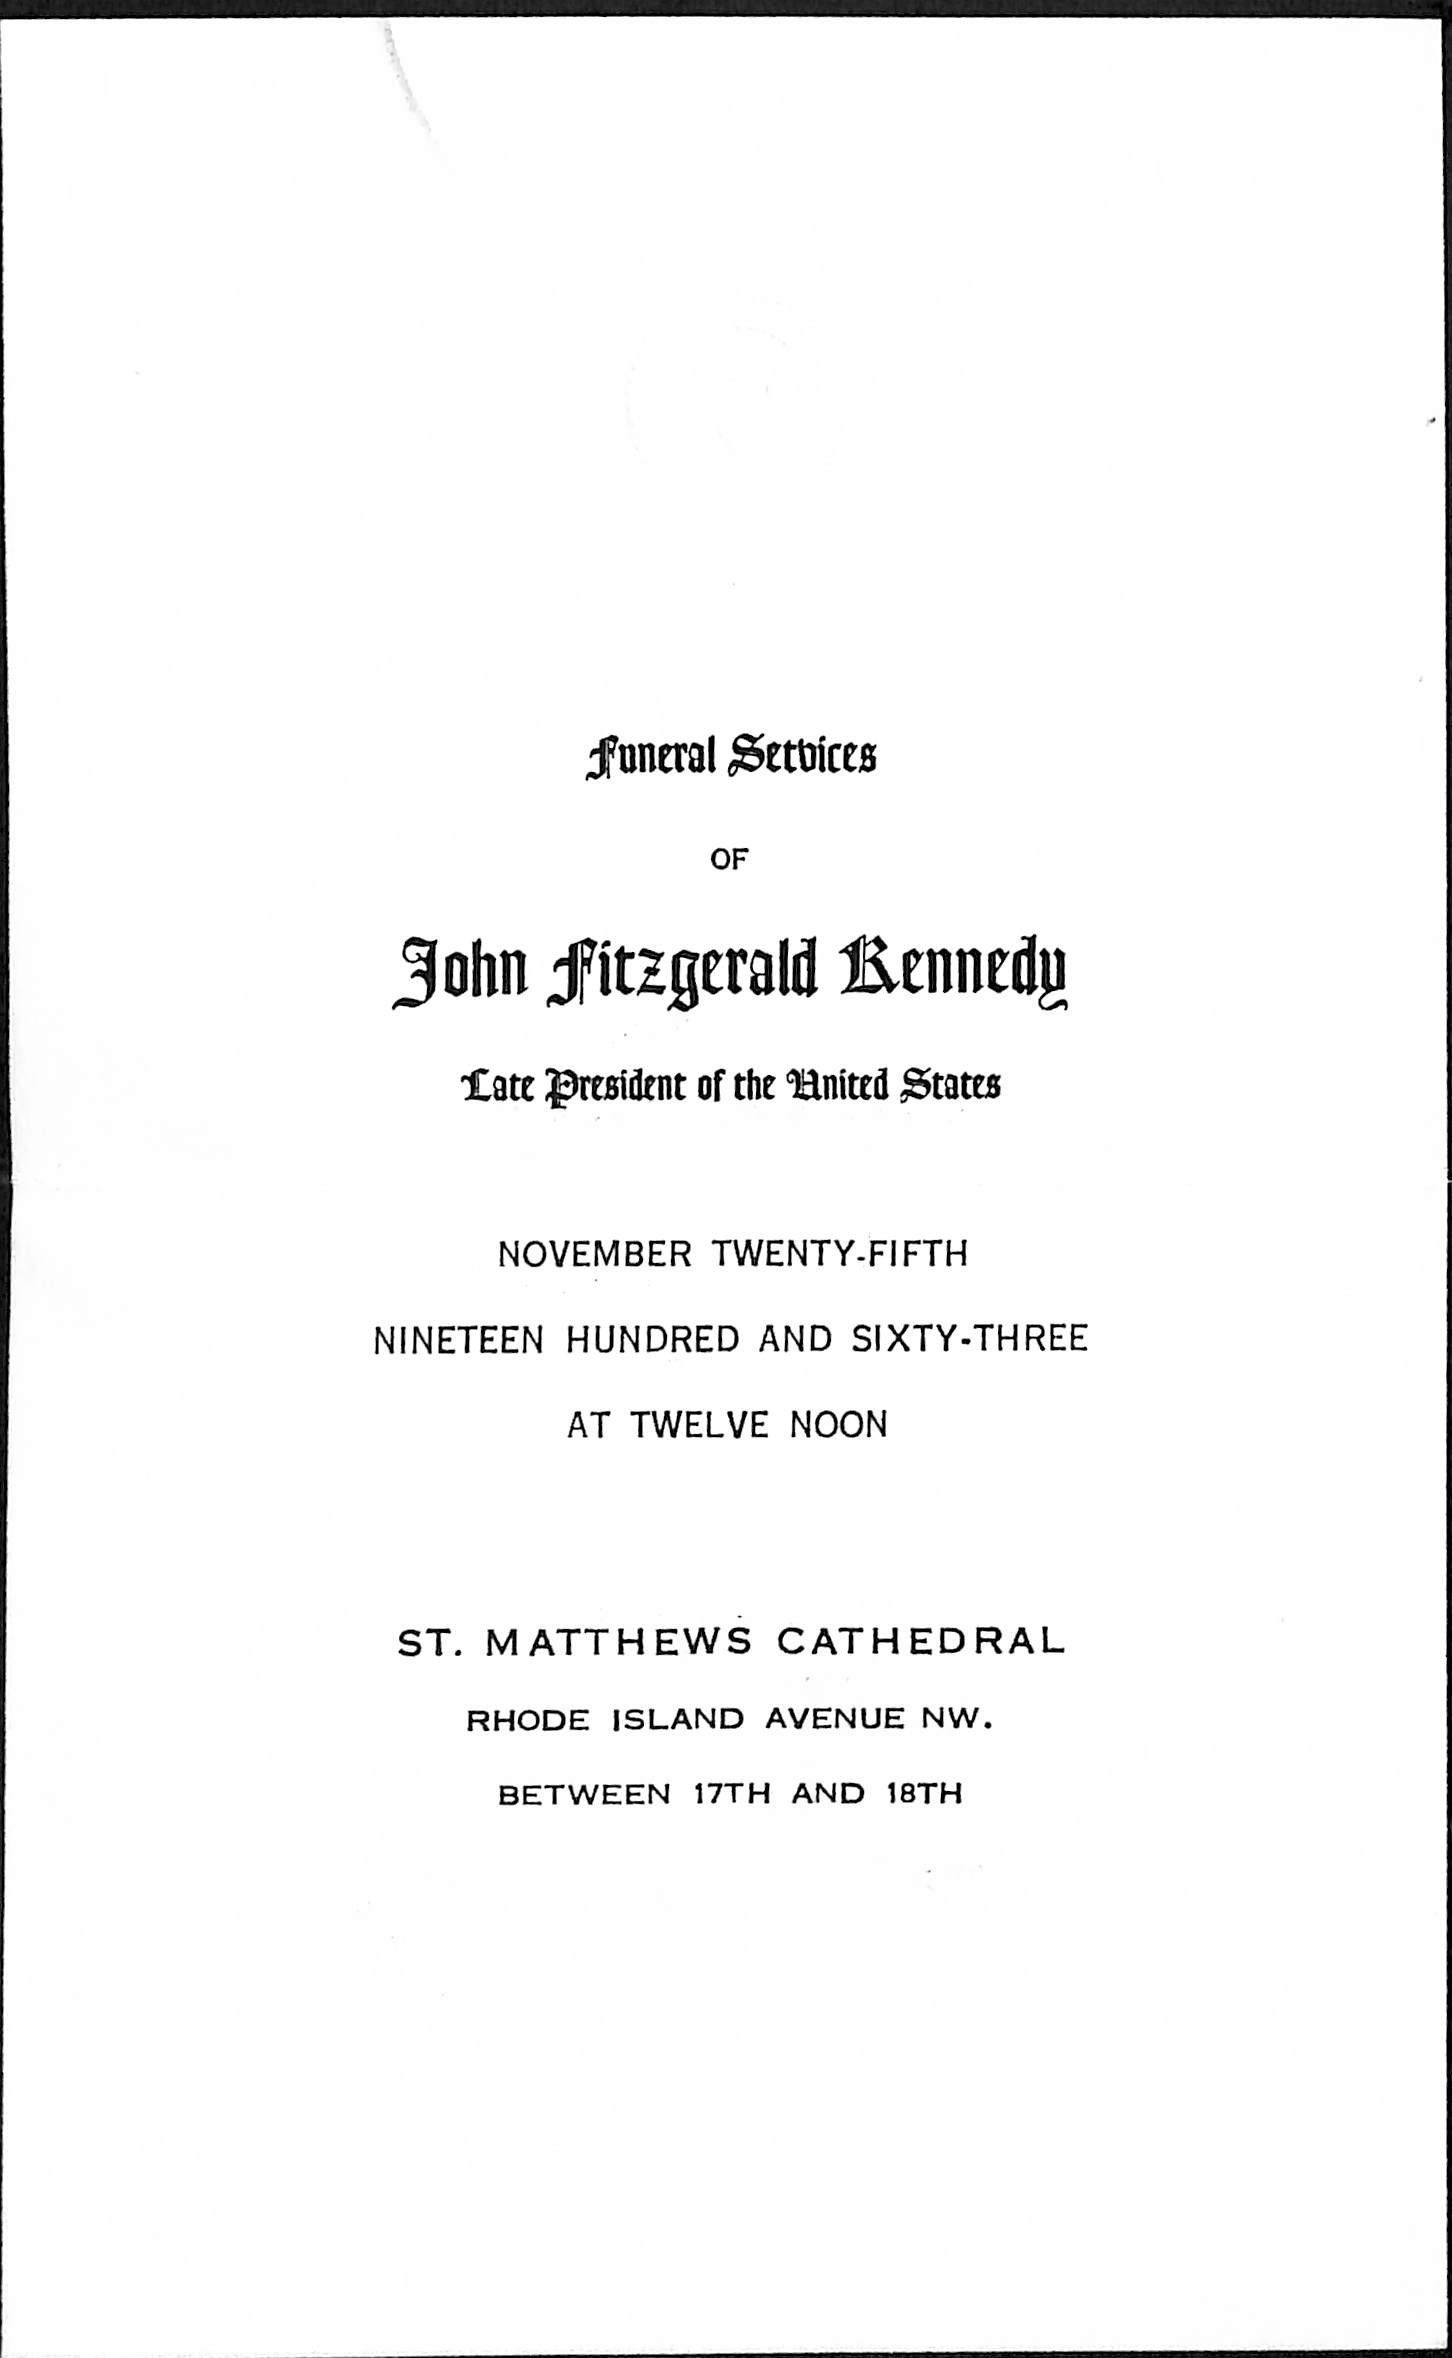 Mem 1 Original Invitation For The Official St. Matthews Cathedral Funeral  In Washington, D.C. For President John F. Kennedy With Original Envelope  Invitation For Funeral